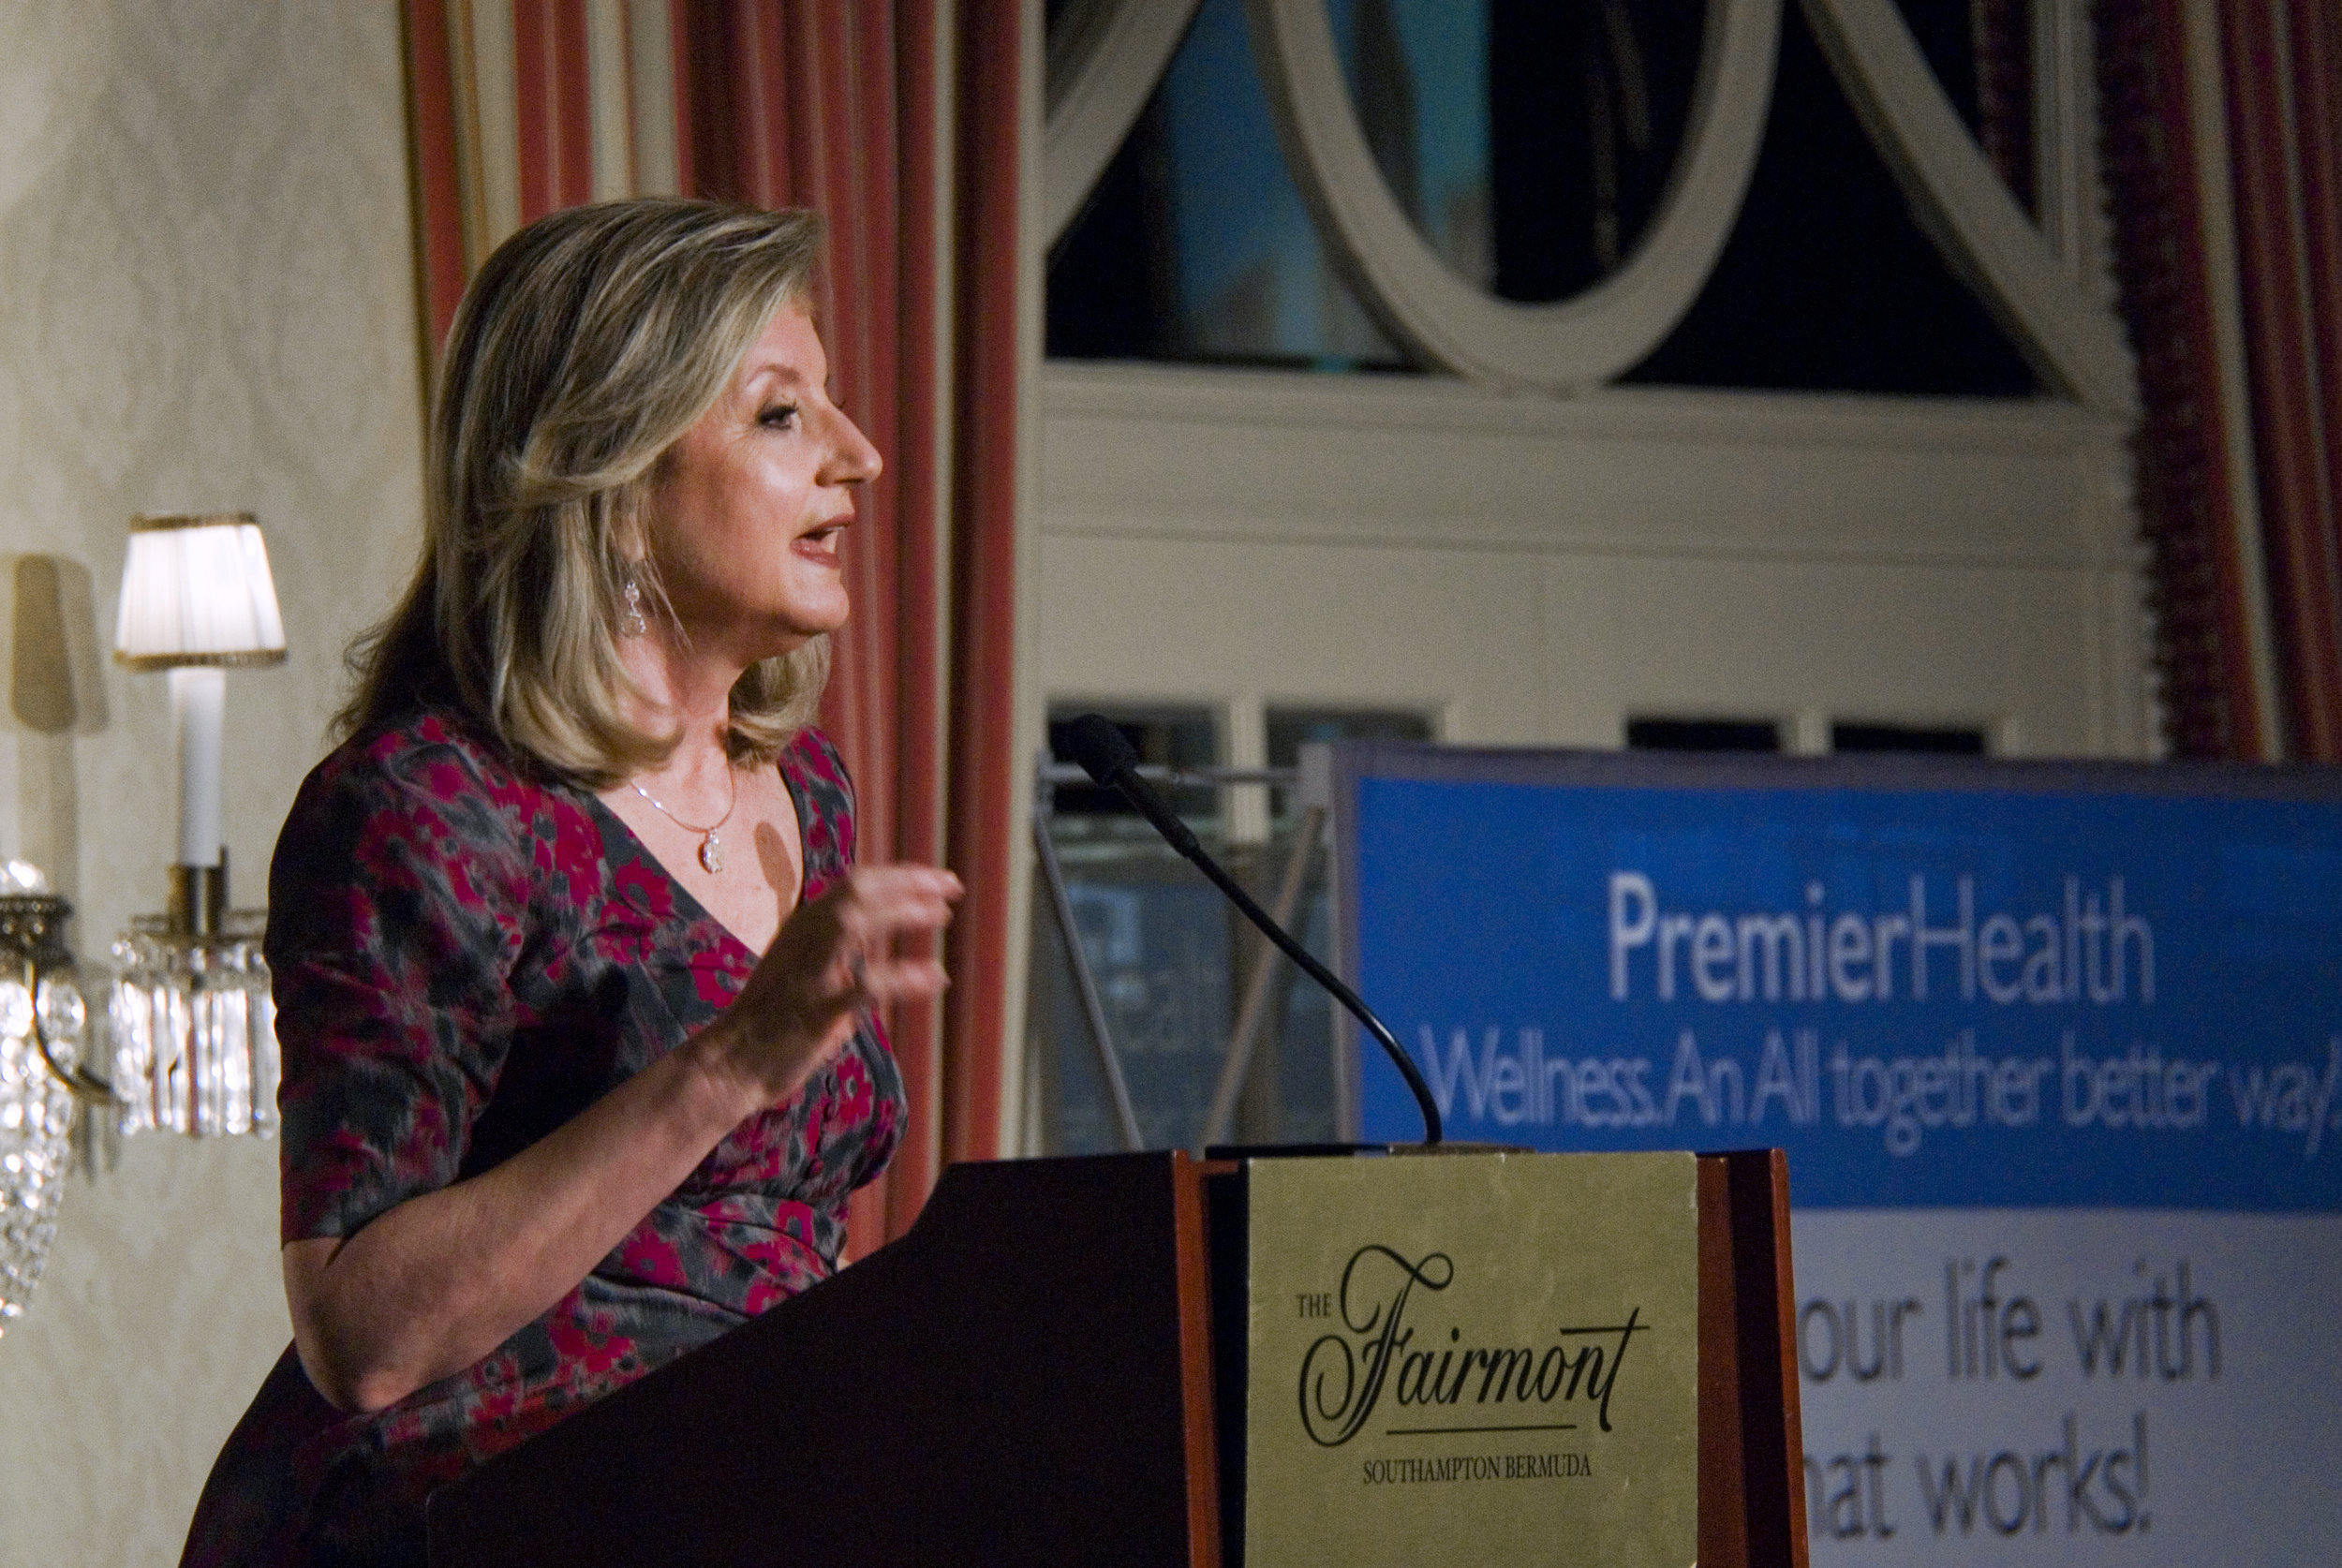 Arianna Huffington addressing the public audience at Fairmont Southampton on 11th April